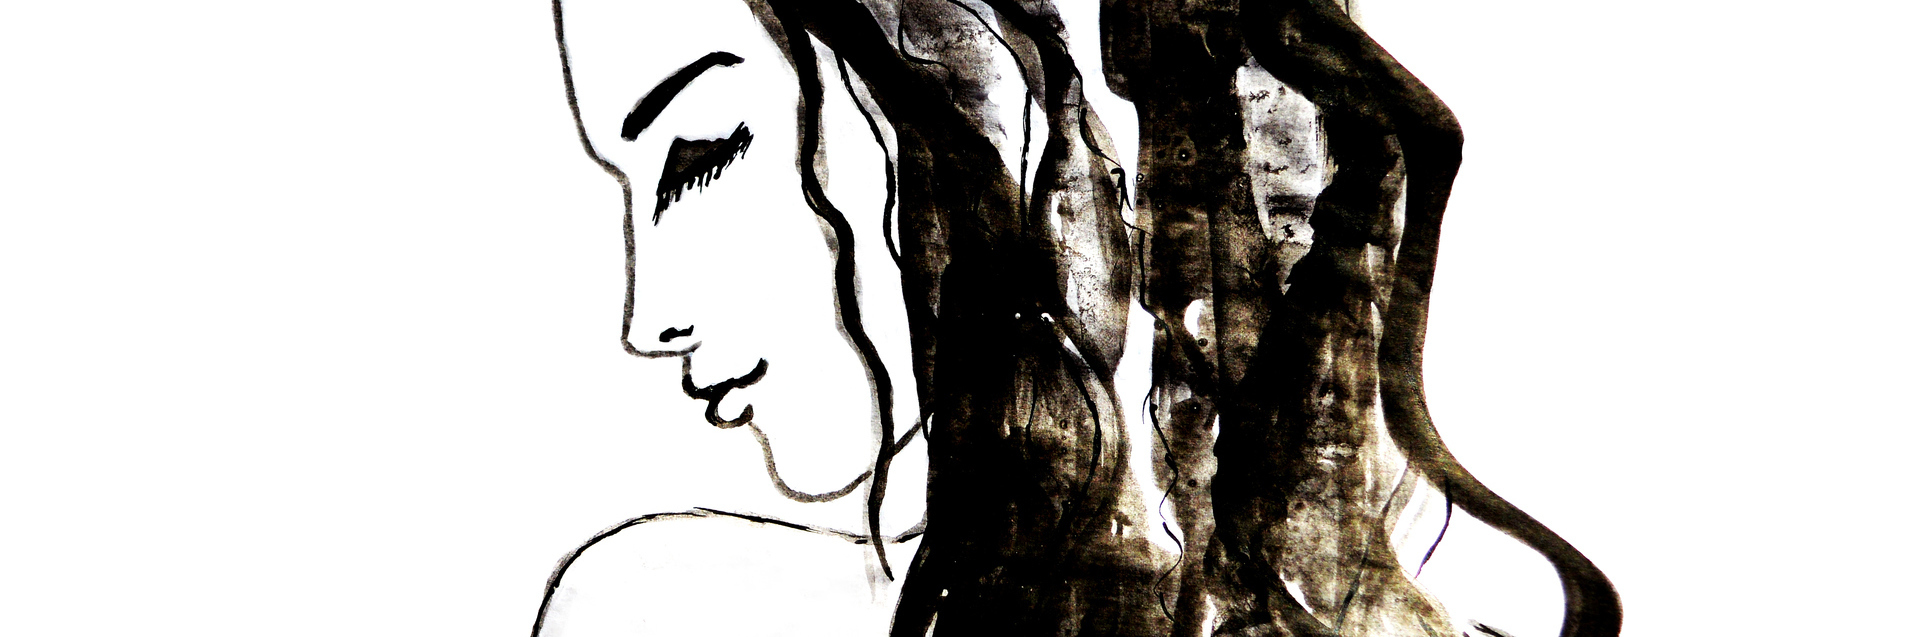 sketch of a woman with long brown hair